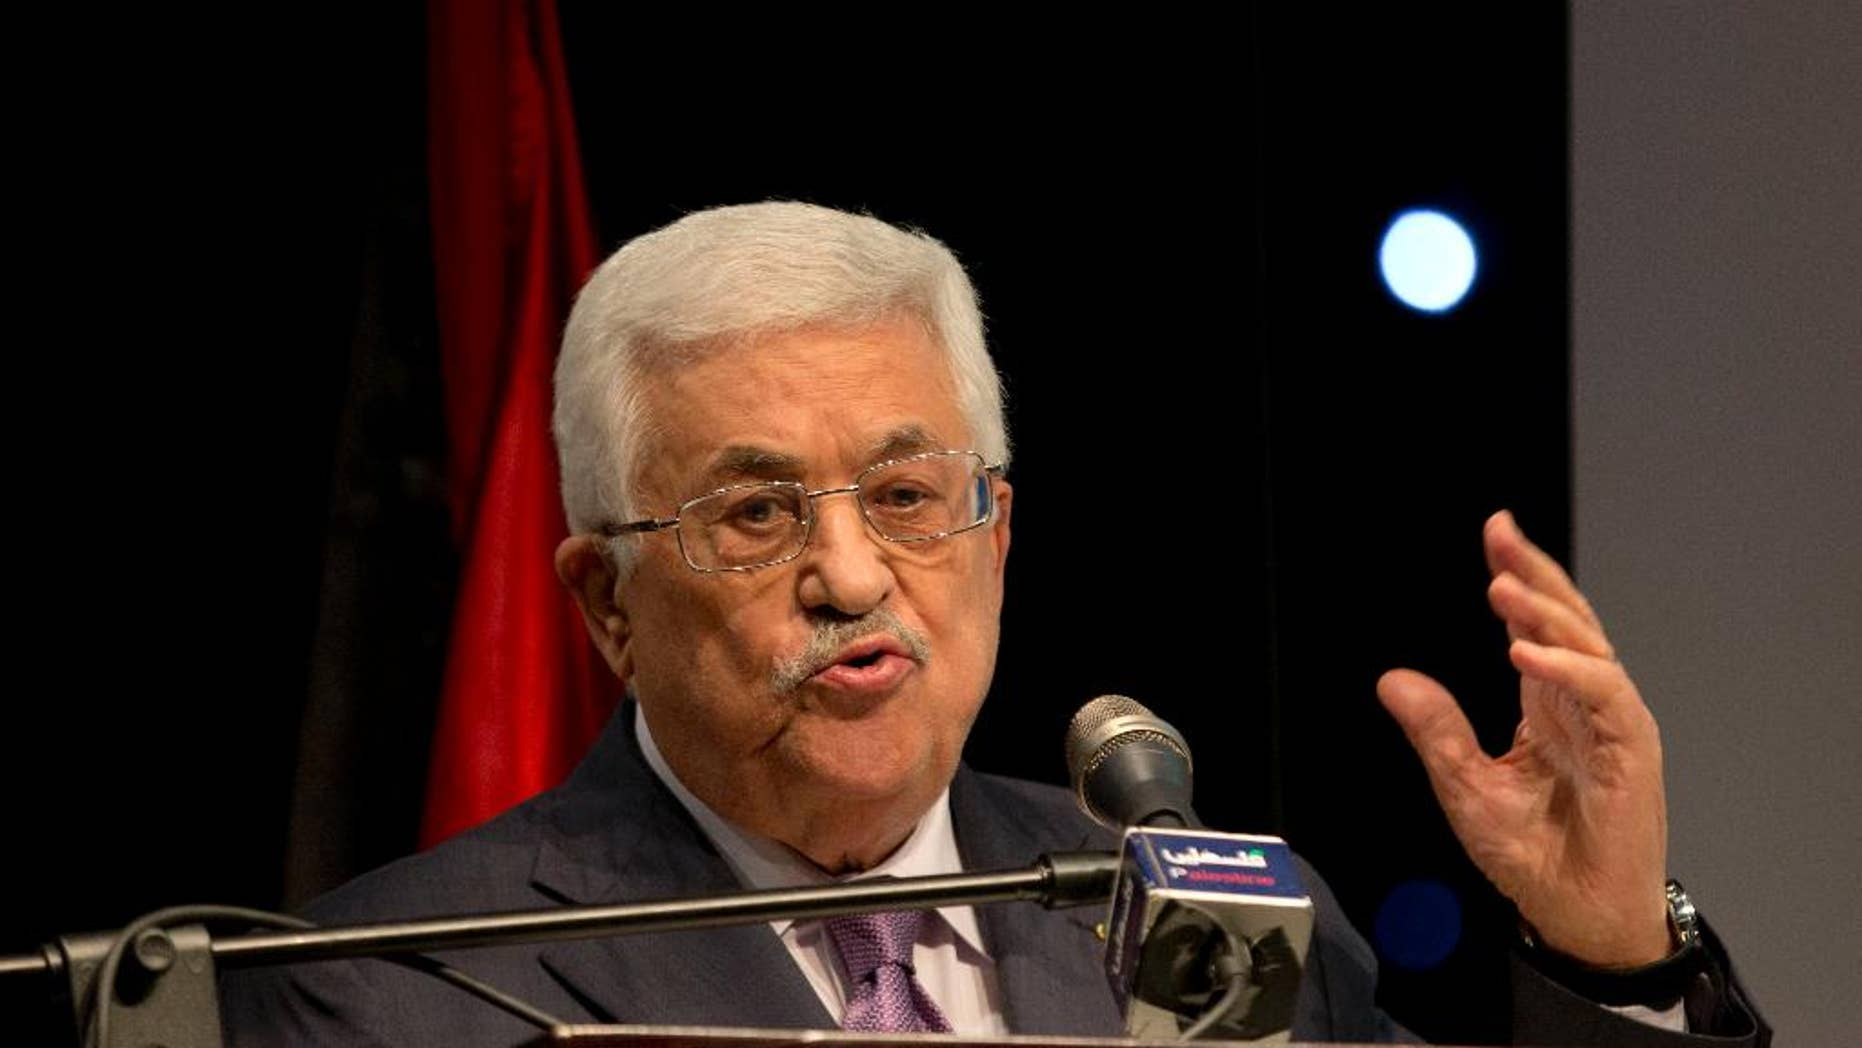 """Palestinian President Mahmoud Abbas speaks during a ceremony of """"Jerusalem In Memory""""?? after the meeting with Secretary General of The Organization of The Islamic Conference Iyad Amin Madani, in the West Bank city of Ramallah, Sunday, Jan. 4, 2015. (AP Photo/Majdi Mohammed)"""